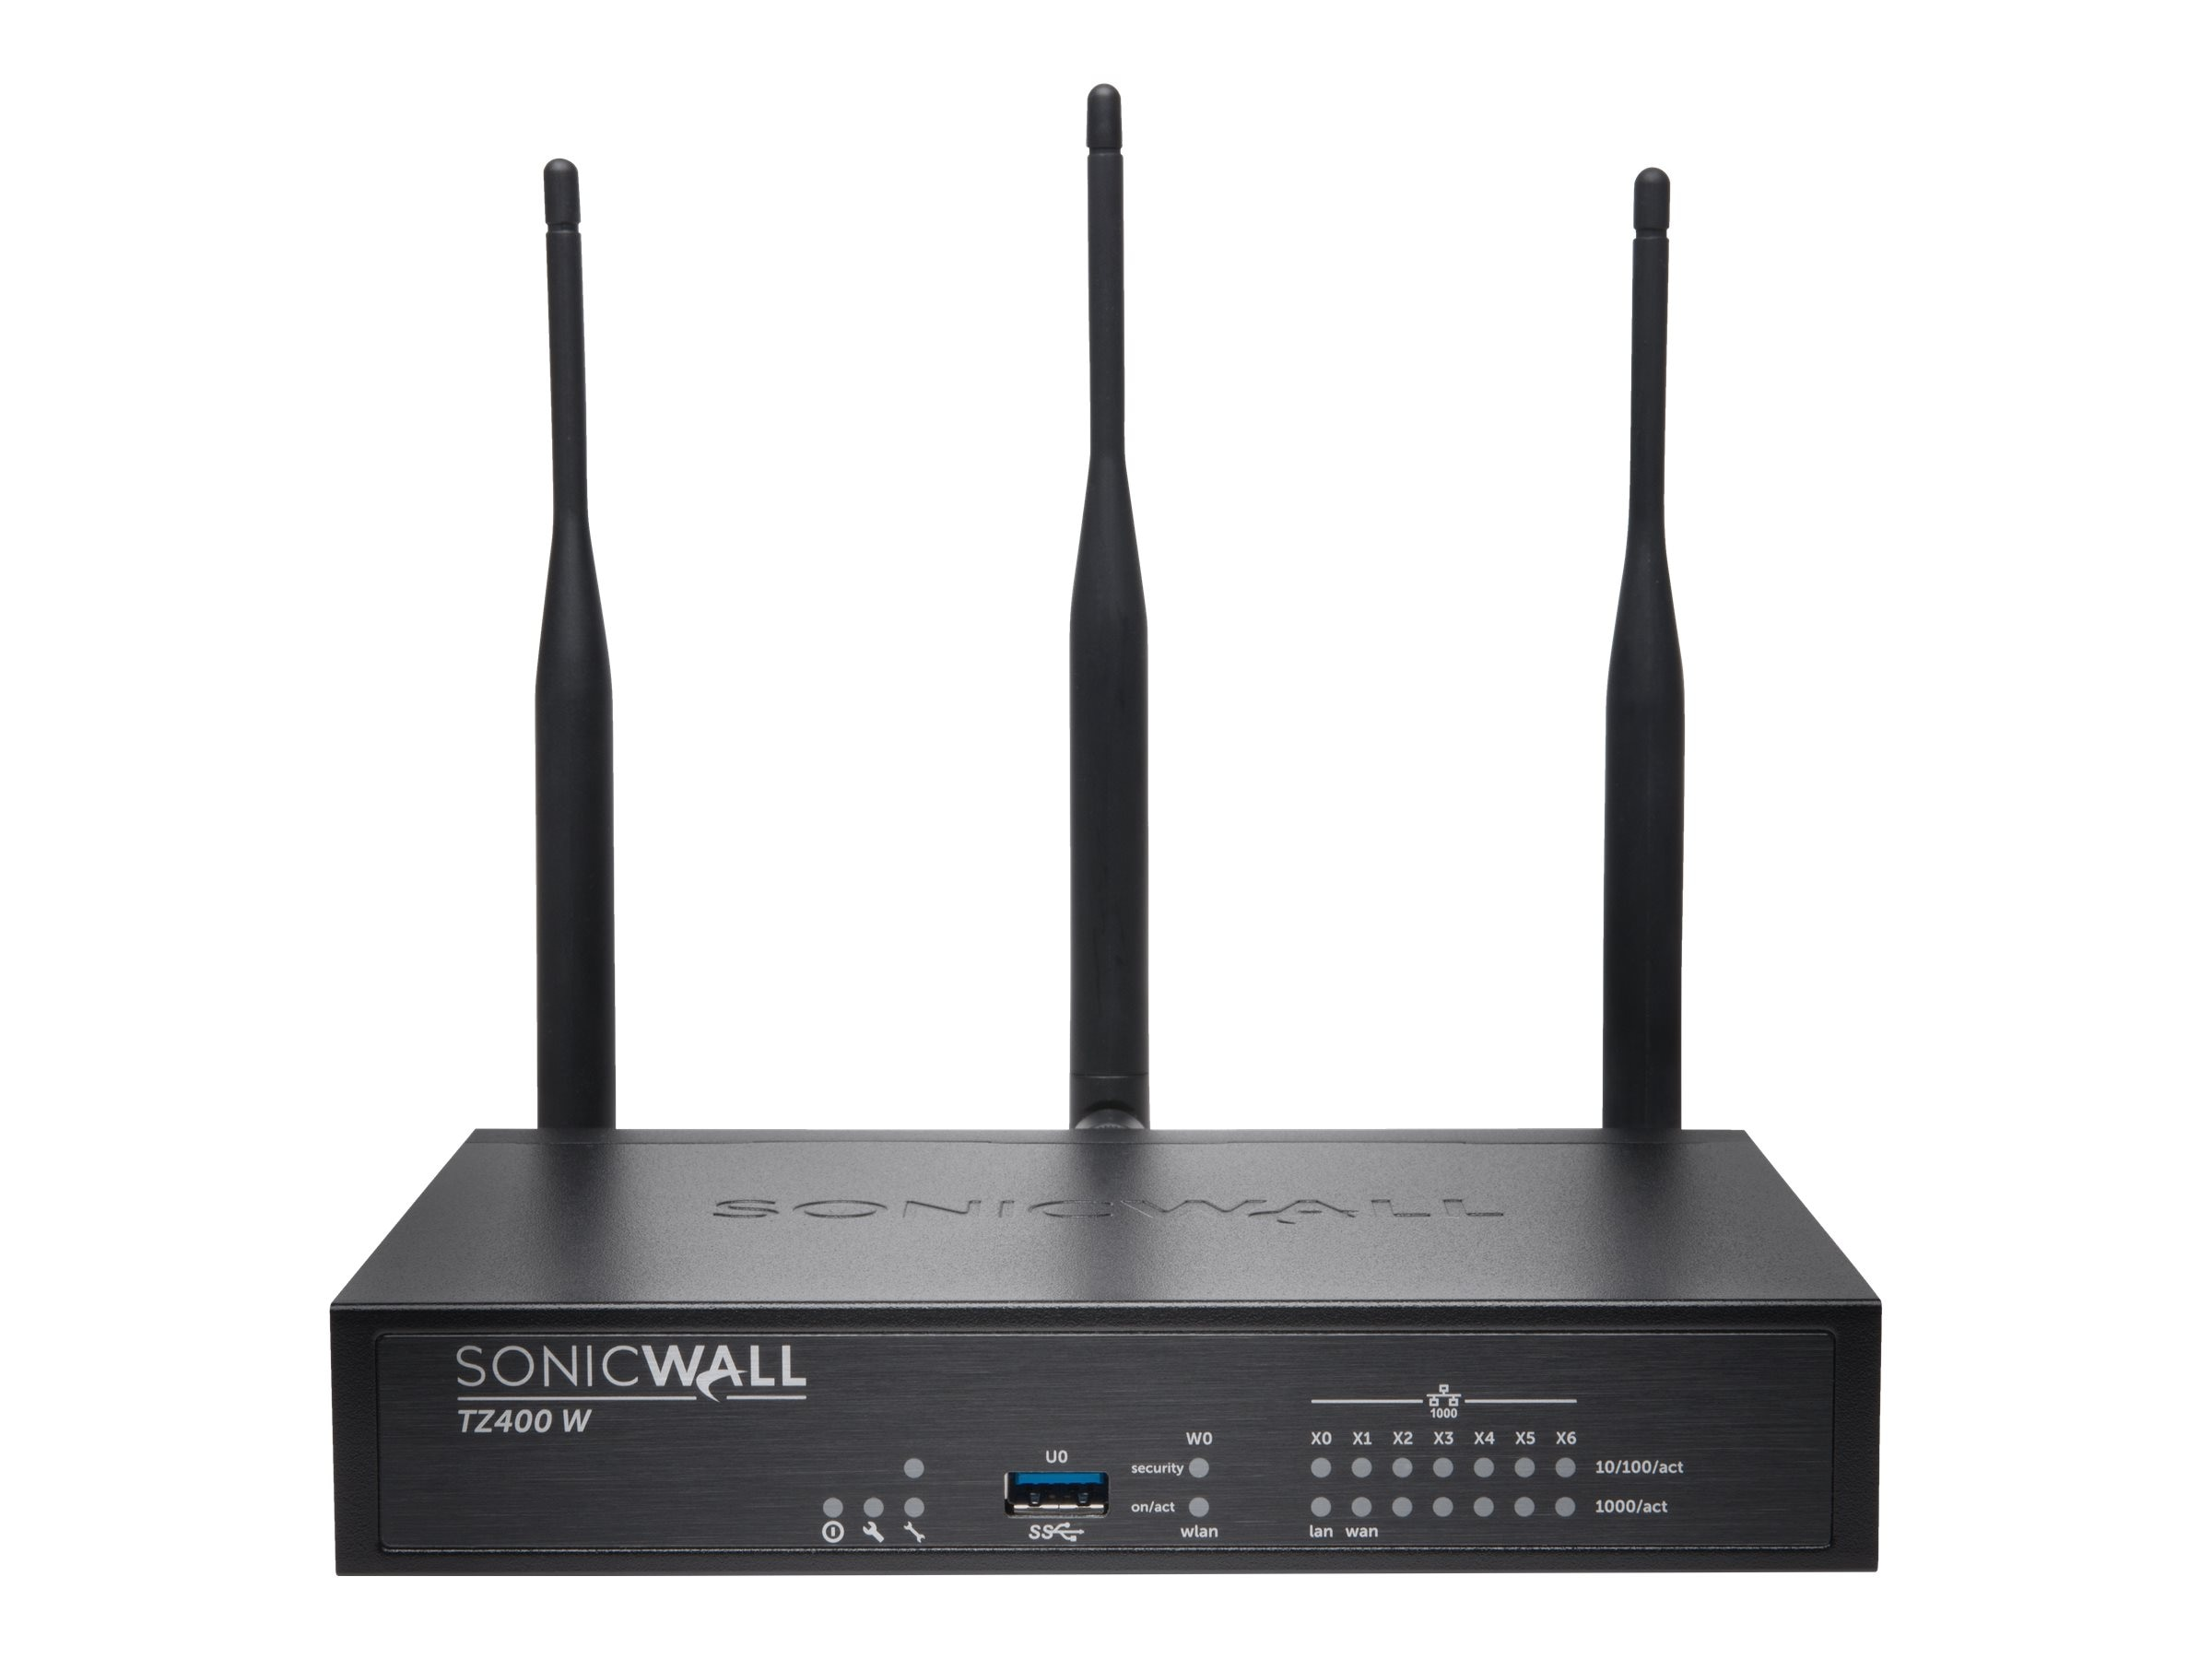 SonicWALL 01-SSC-0214 Image 2